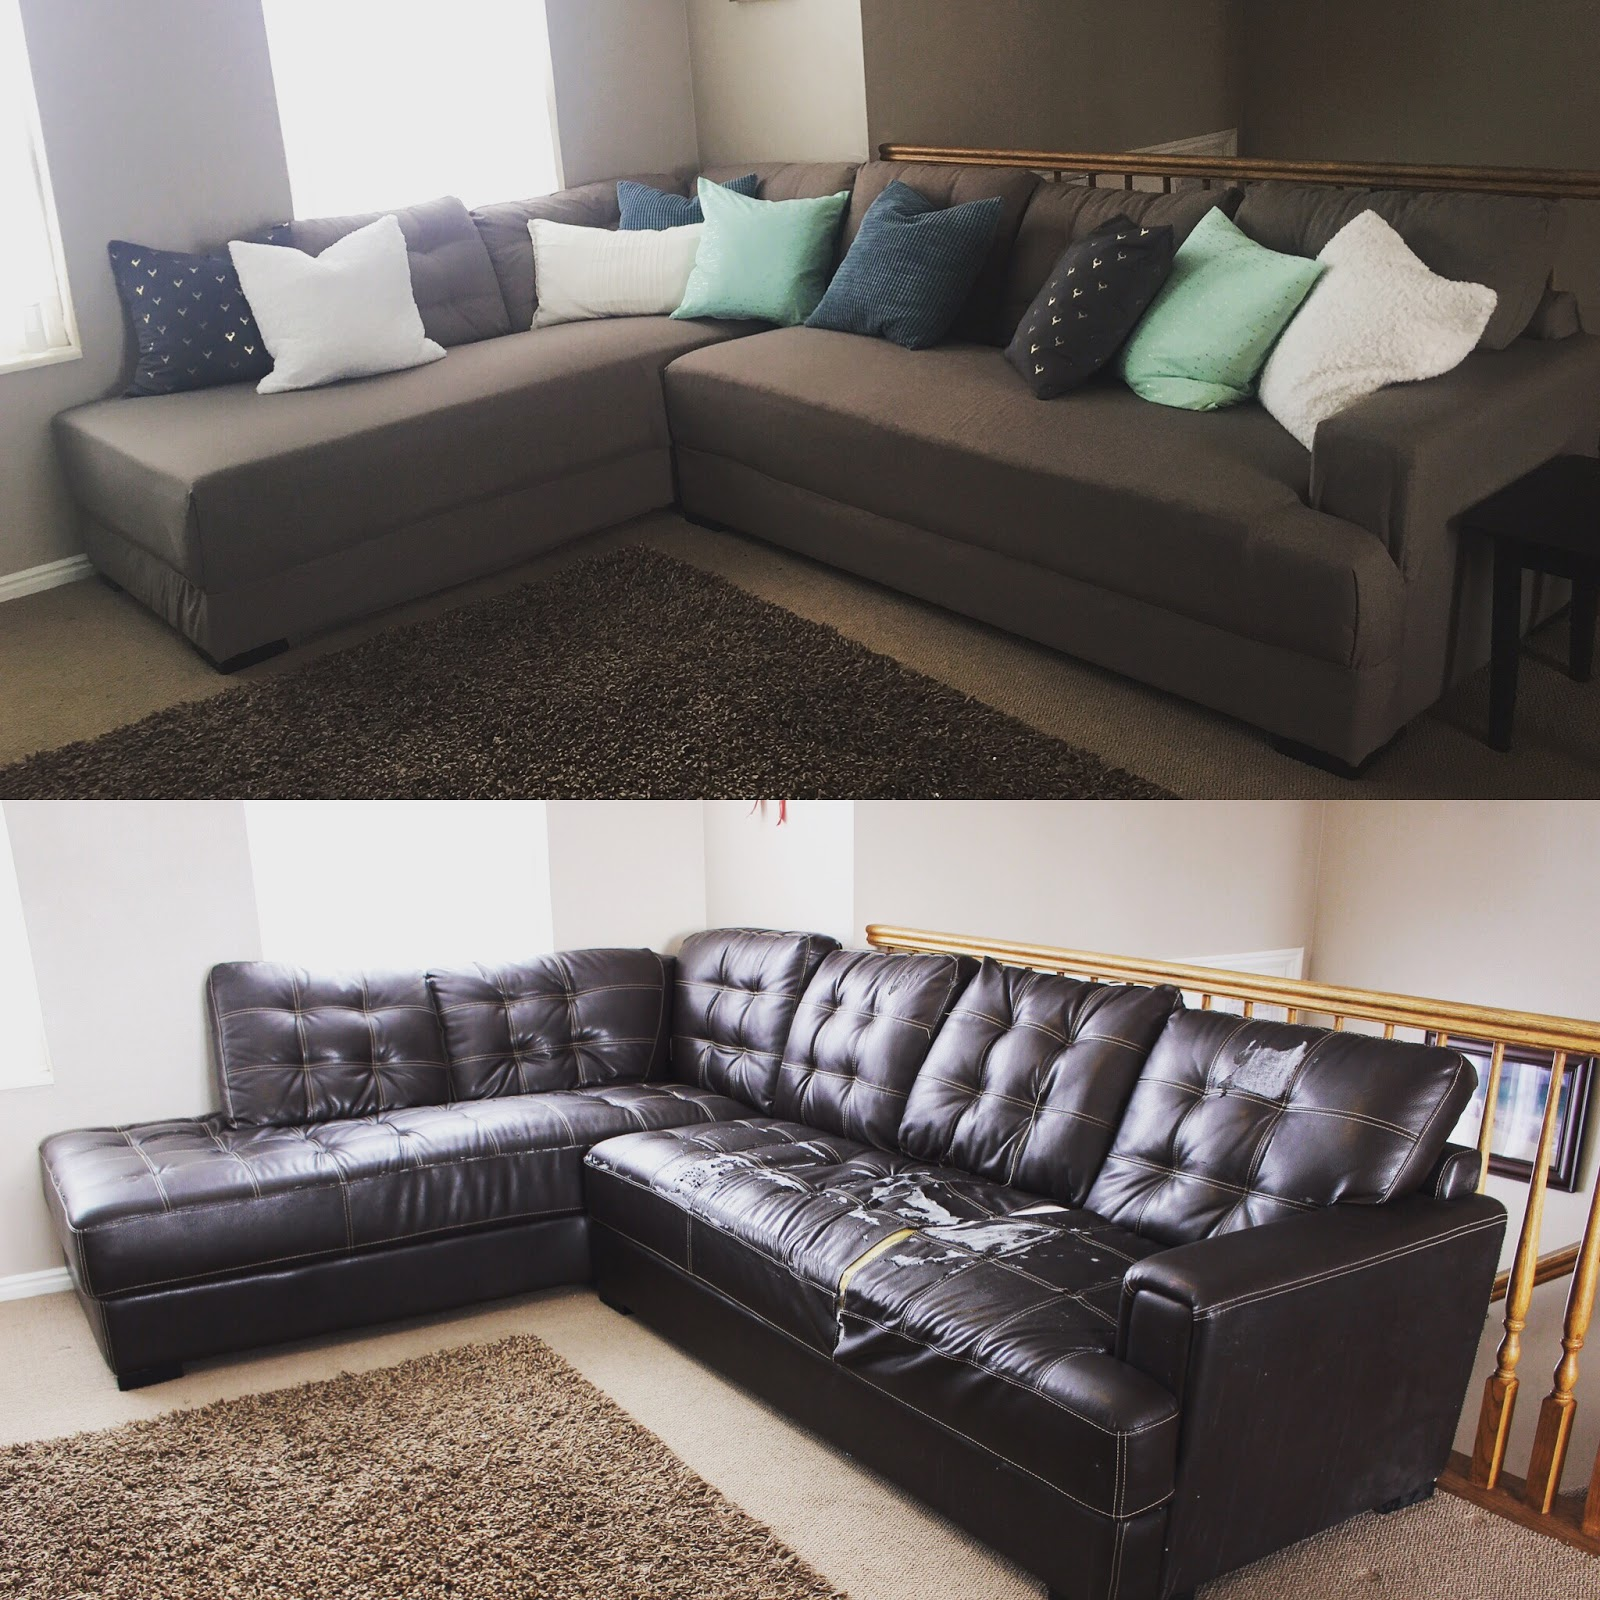 Diy How To Reupholster A Sofa Aloworld Microfiber Sleeper Sectional Remodelaholic 28 Ways